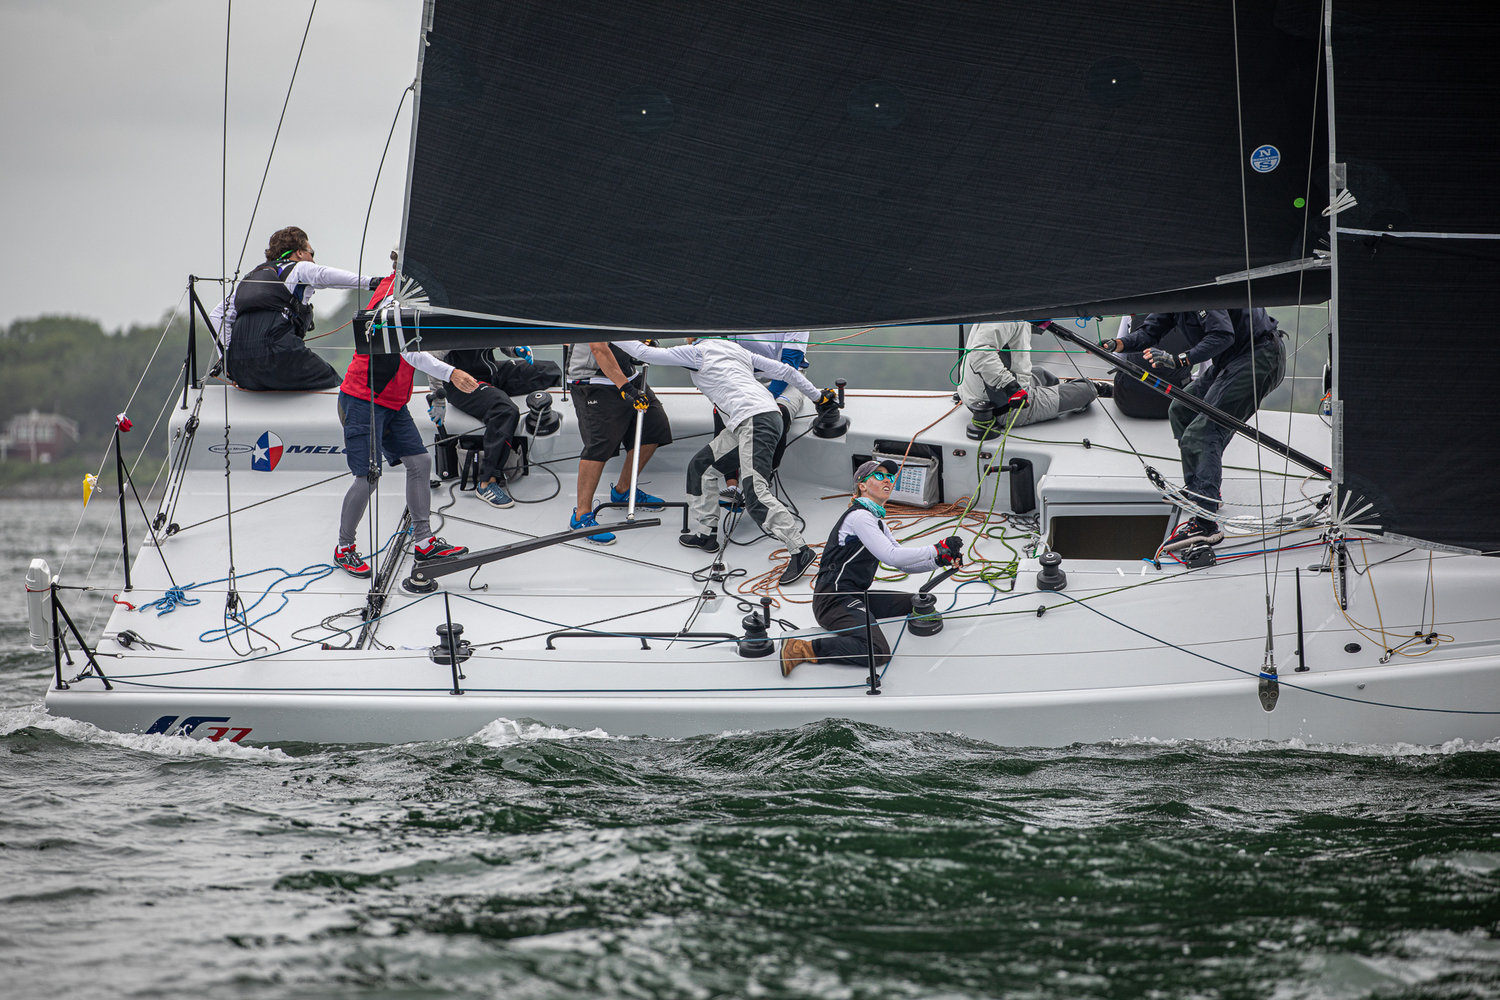 Photos by Melges Performance Sailboats / Sarah Wilkinson for Beigel Sailing Media